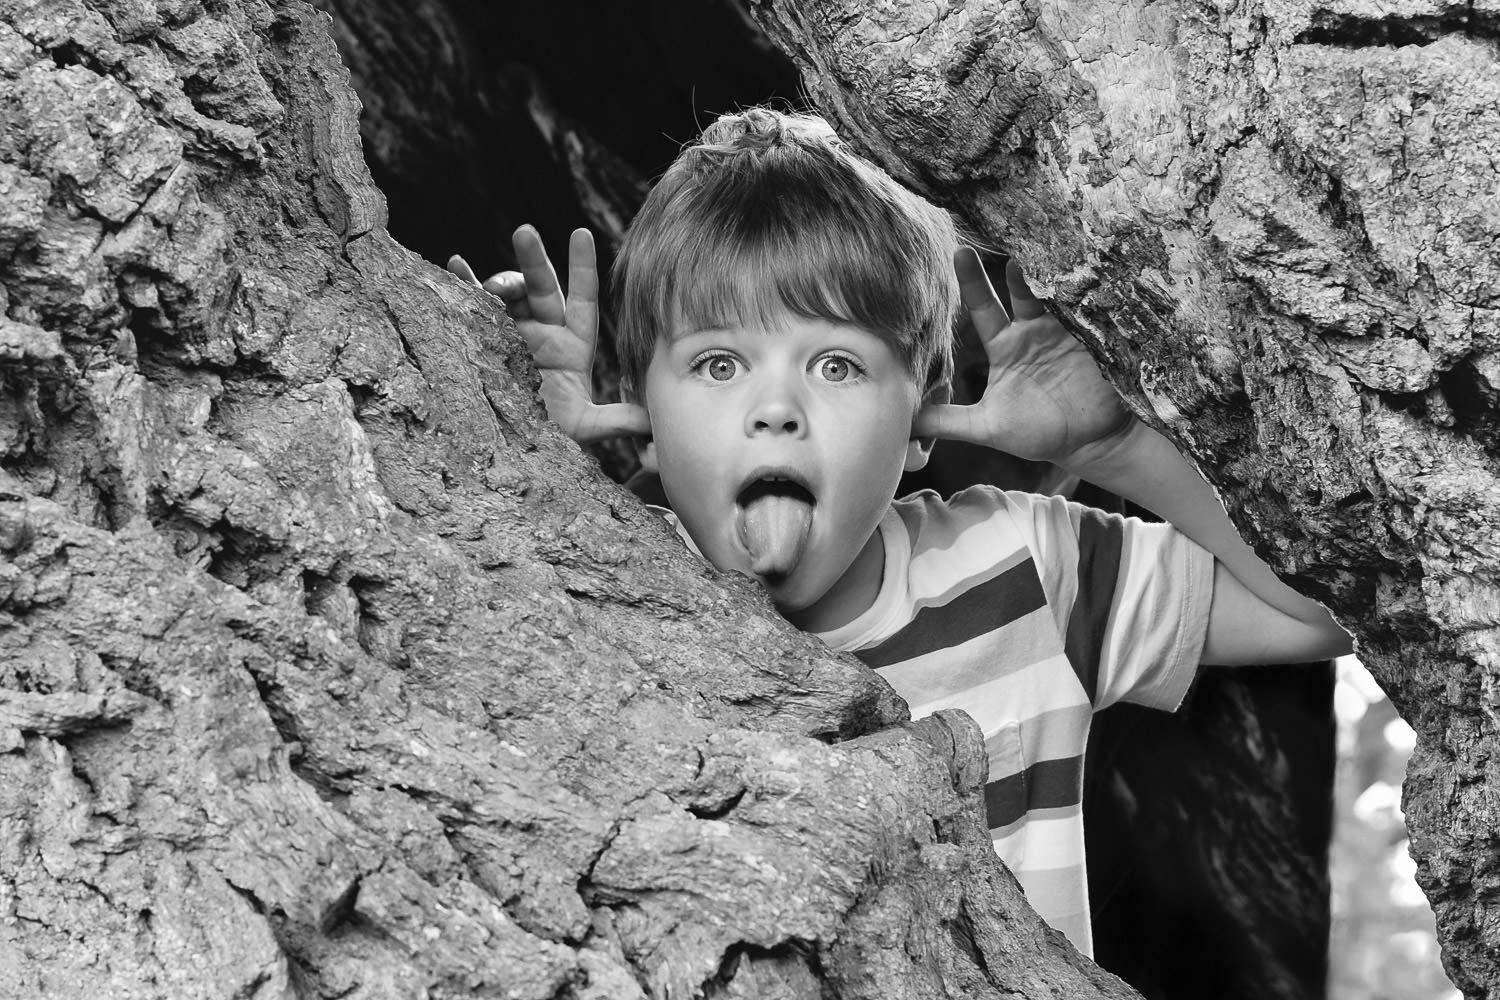 Boy peering through hollow tree trunk with eyes wide open and tongue out